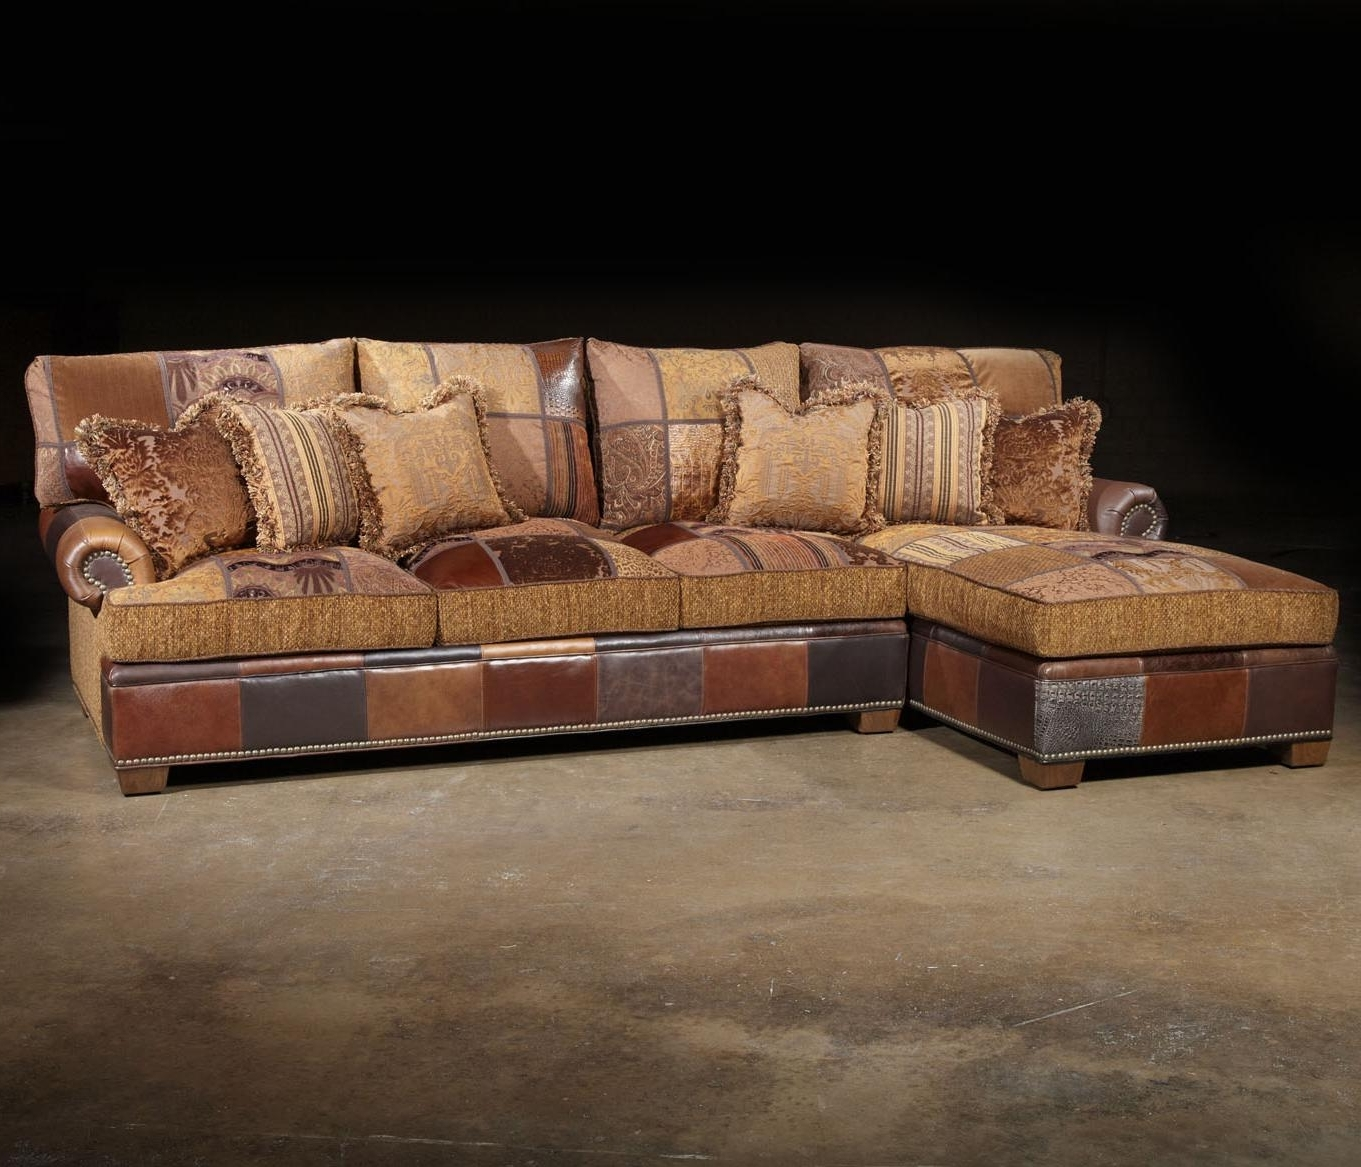 Most Recent Oshawa Sectional Sofas Intended For Furniture : Deeply Tufted Sofa Cheap Sofa Set Malaysia Velvet Sofa (View 4 of 15)